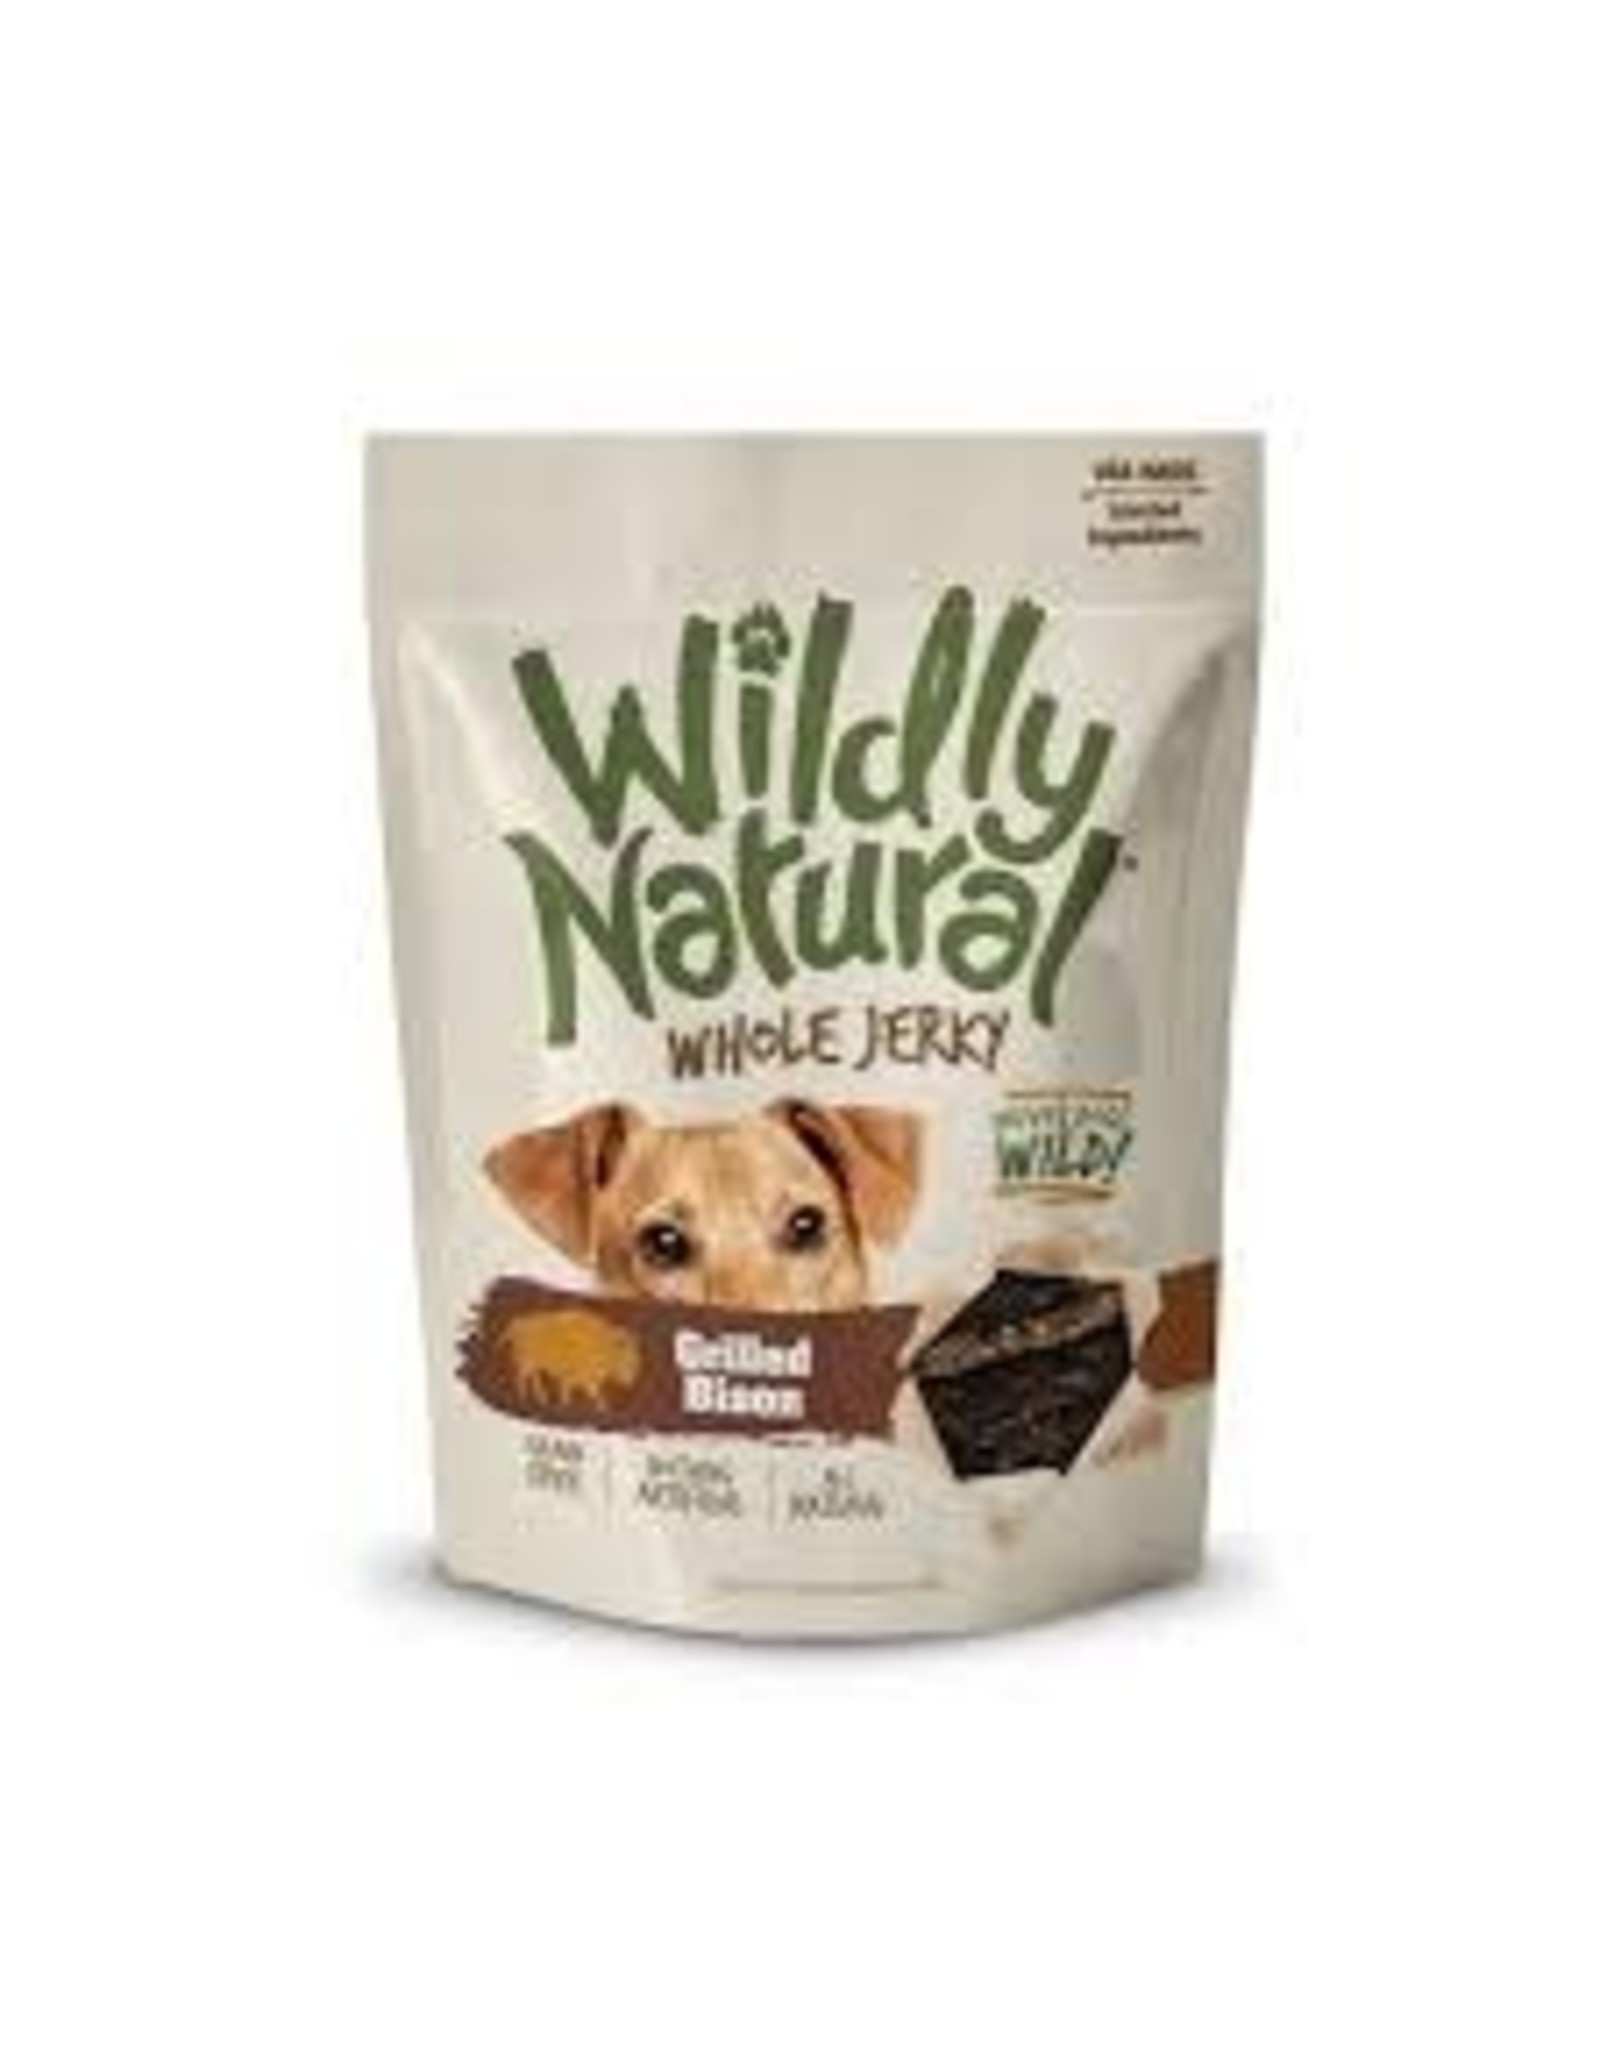 Wildly Natural Wildly Natural Whole Jerky Strips Grilled Bison 141g